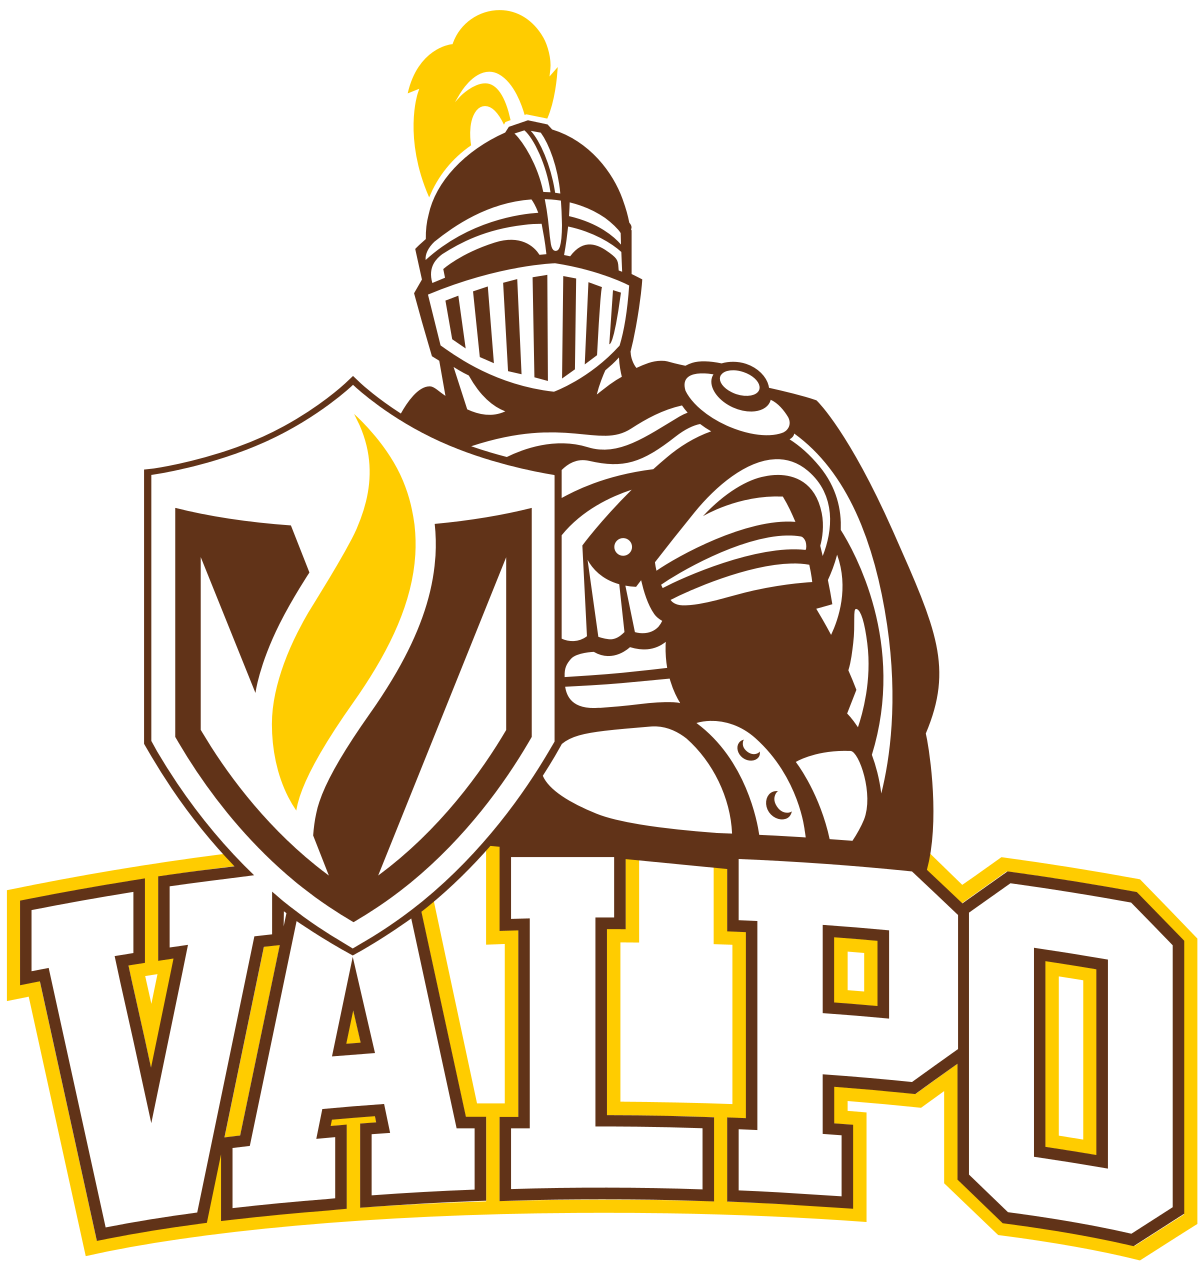 Basketball team huddle clipart banner library download Valparaiso Crusaders - Wikipedia banner library download